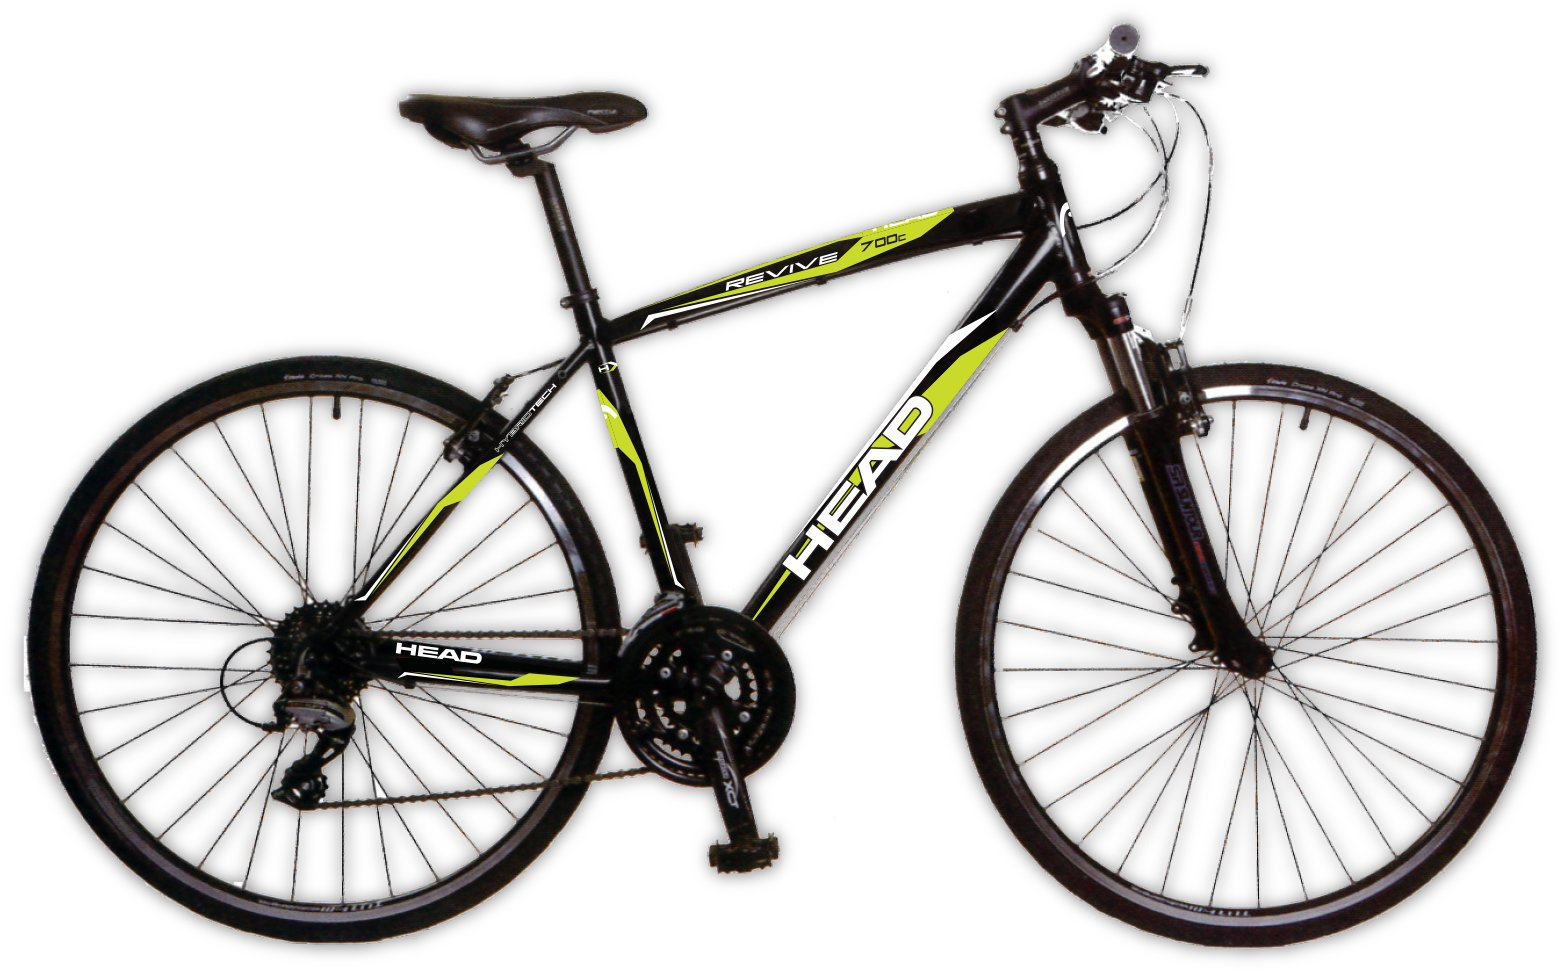 "HEAD Revive XS 24 Speed Men's Hybrid Road Bike Black / Green 22"" Frame"